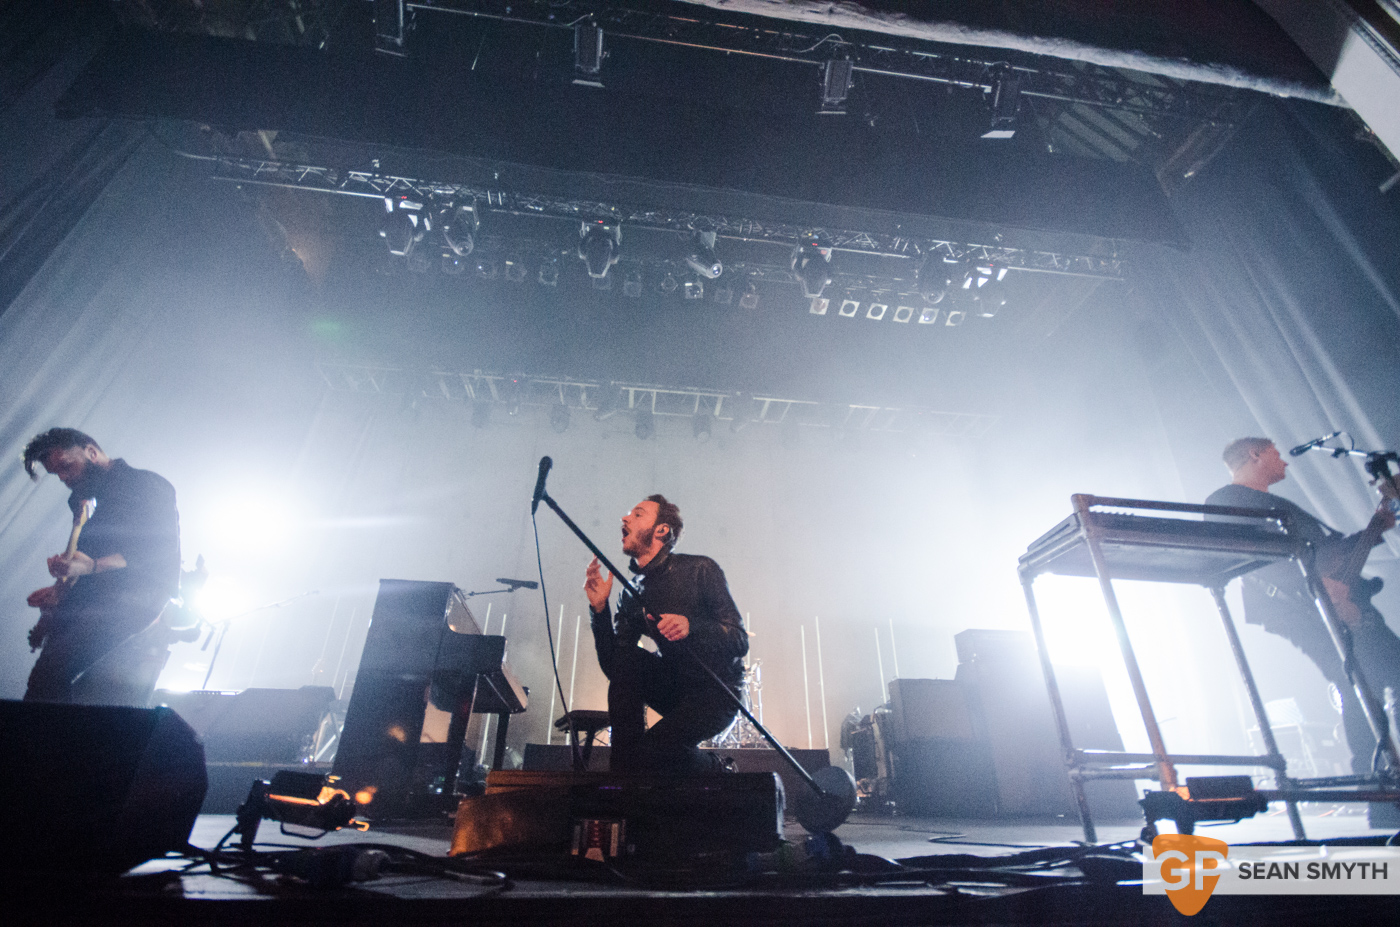 editors-at-the-olympia-theatre-by-sean-smyth-10-10-15-14-of-28_21469303253_o